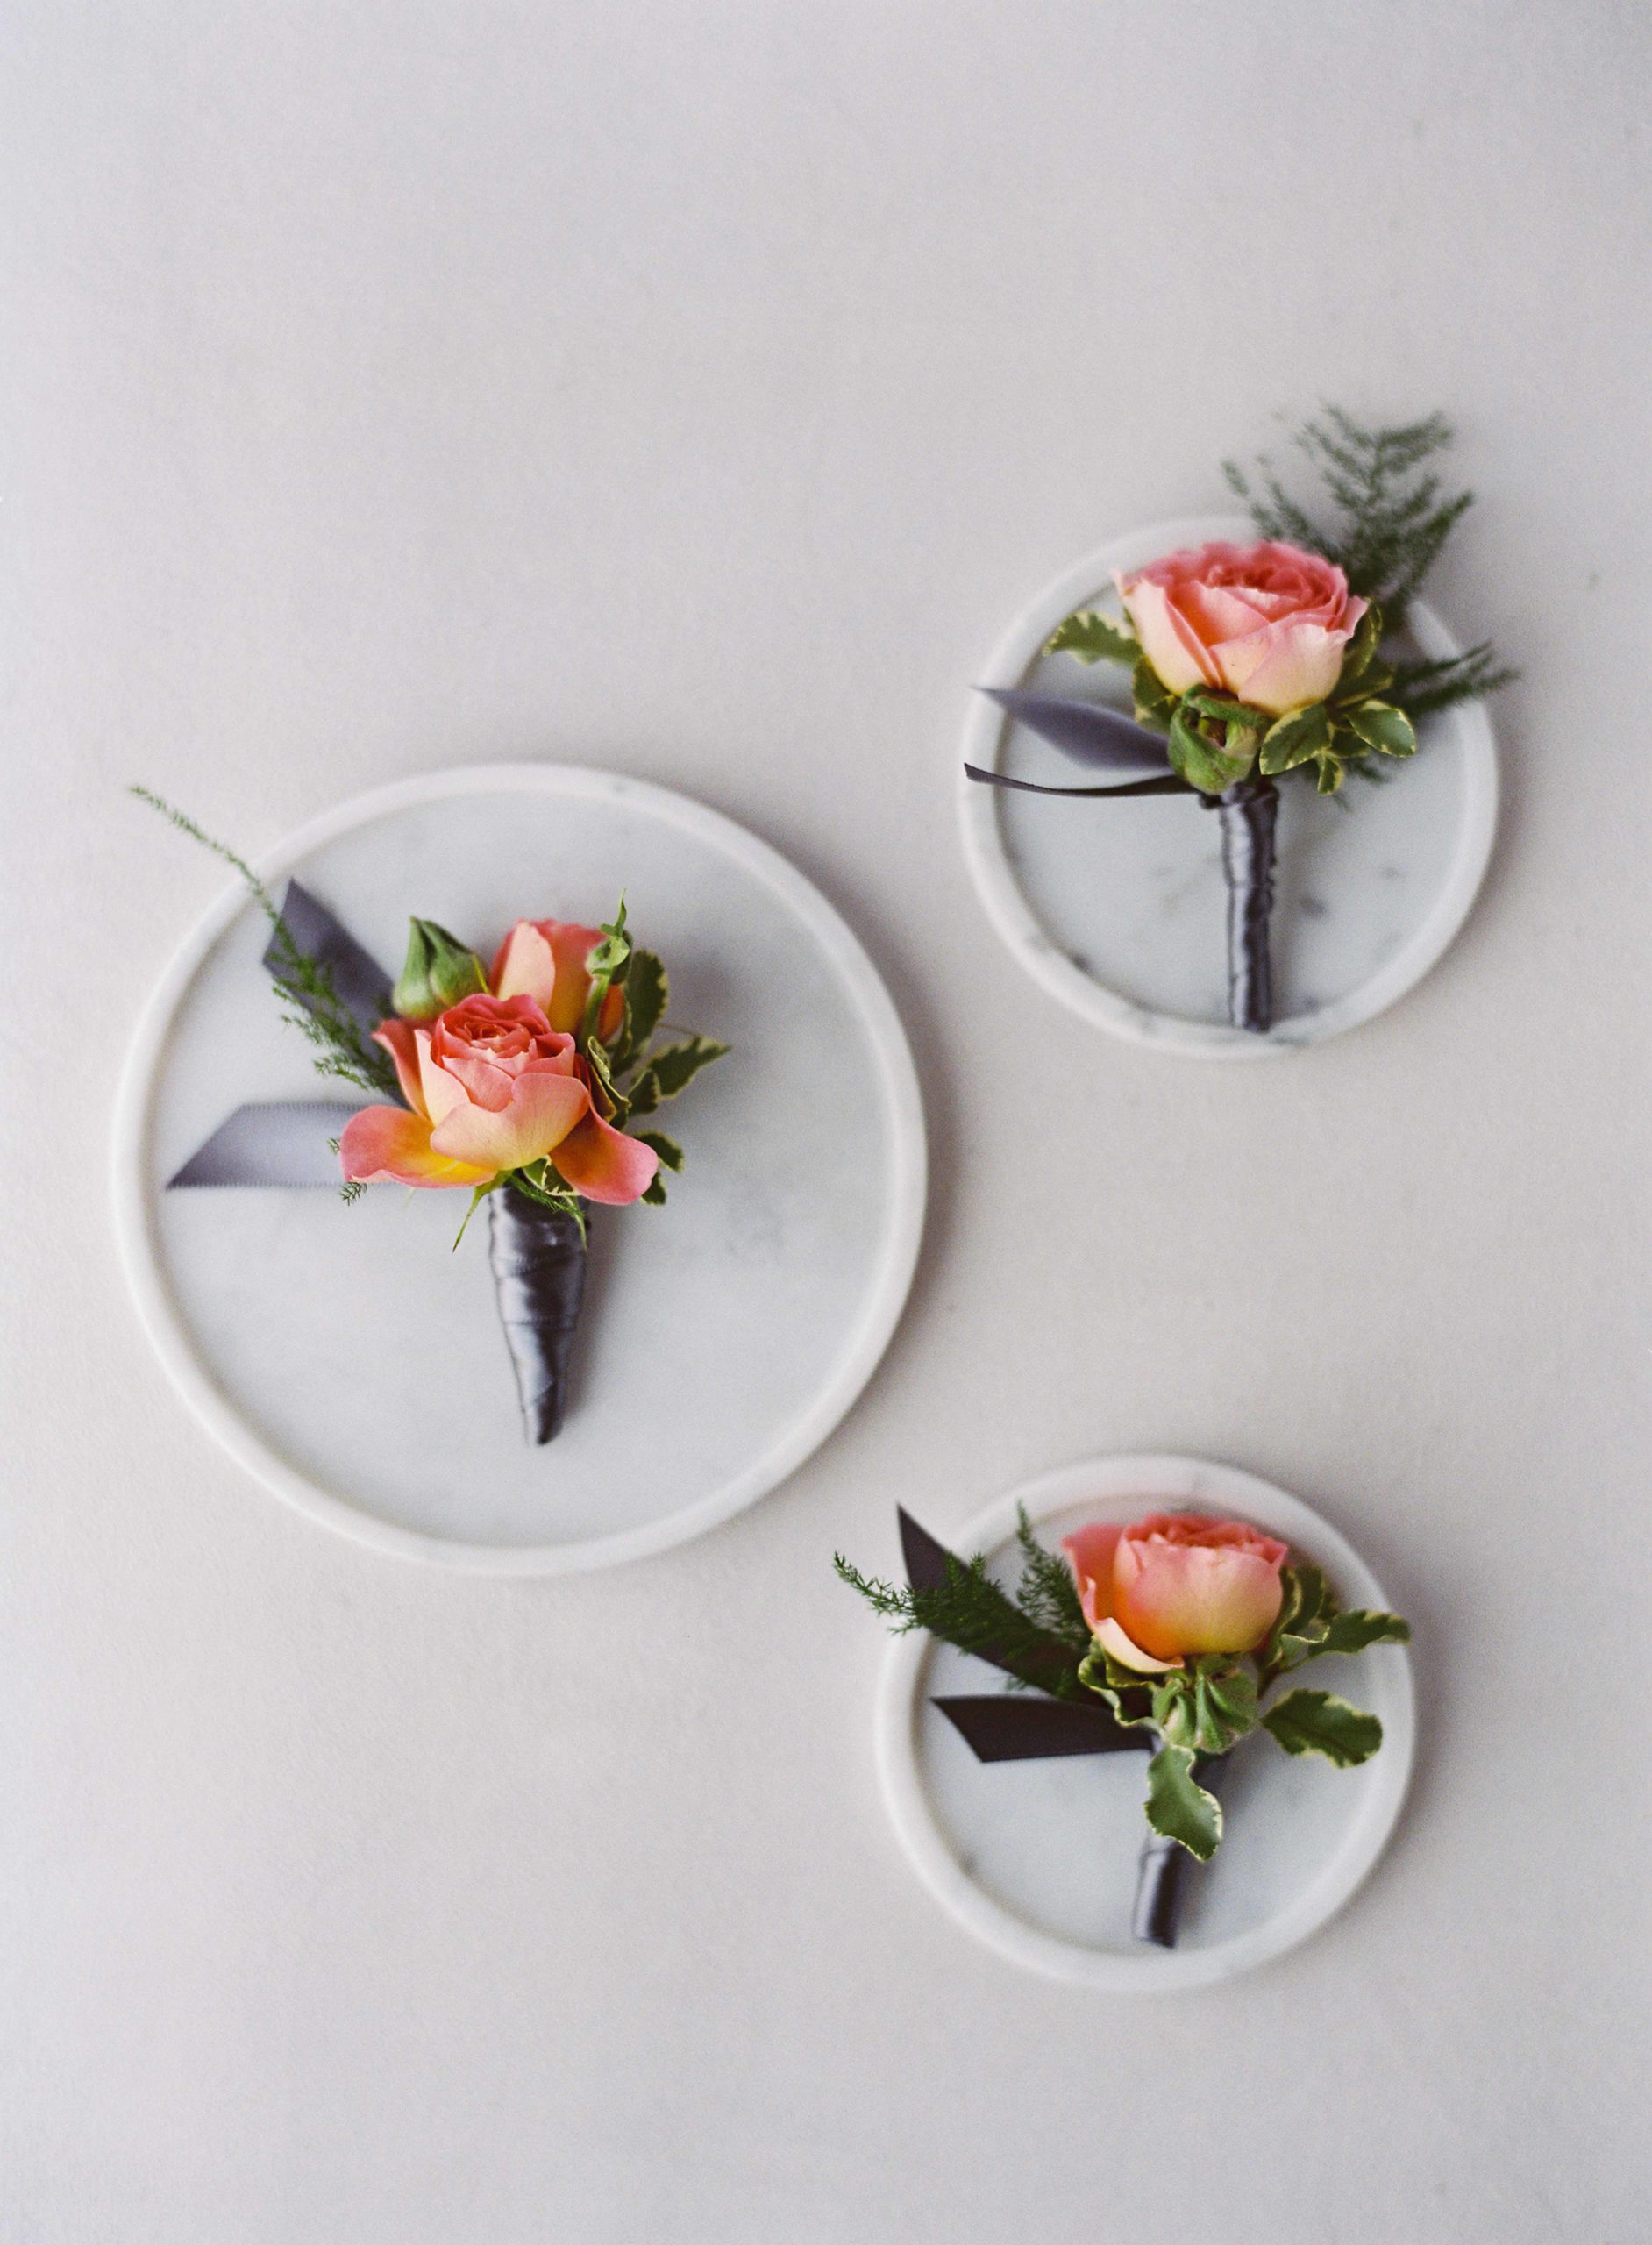 Hot pink and peach boutonnieres - Seattle Wedding Flowers by Flora Nova Design; Hot pink and peach wedding at Roche Harbor Resort